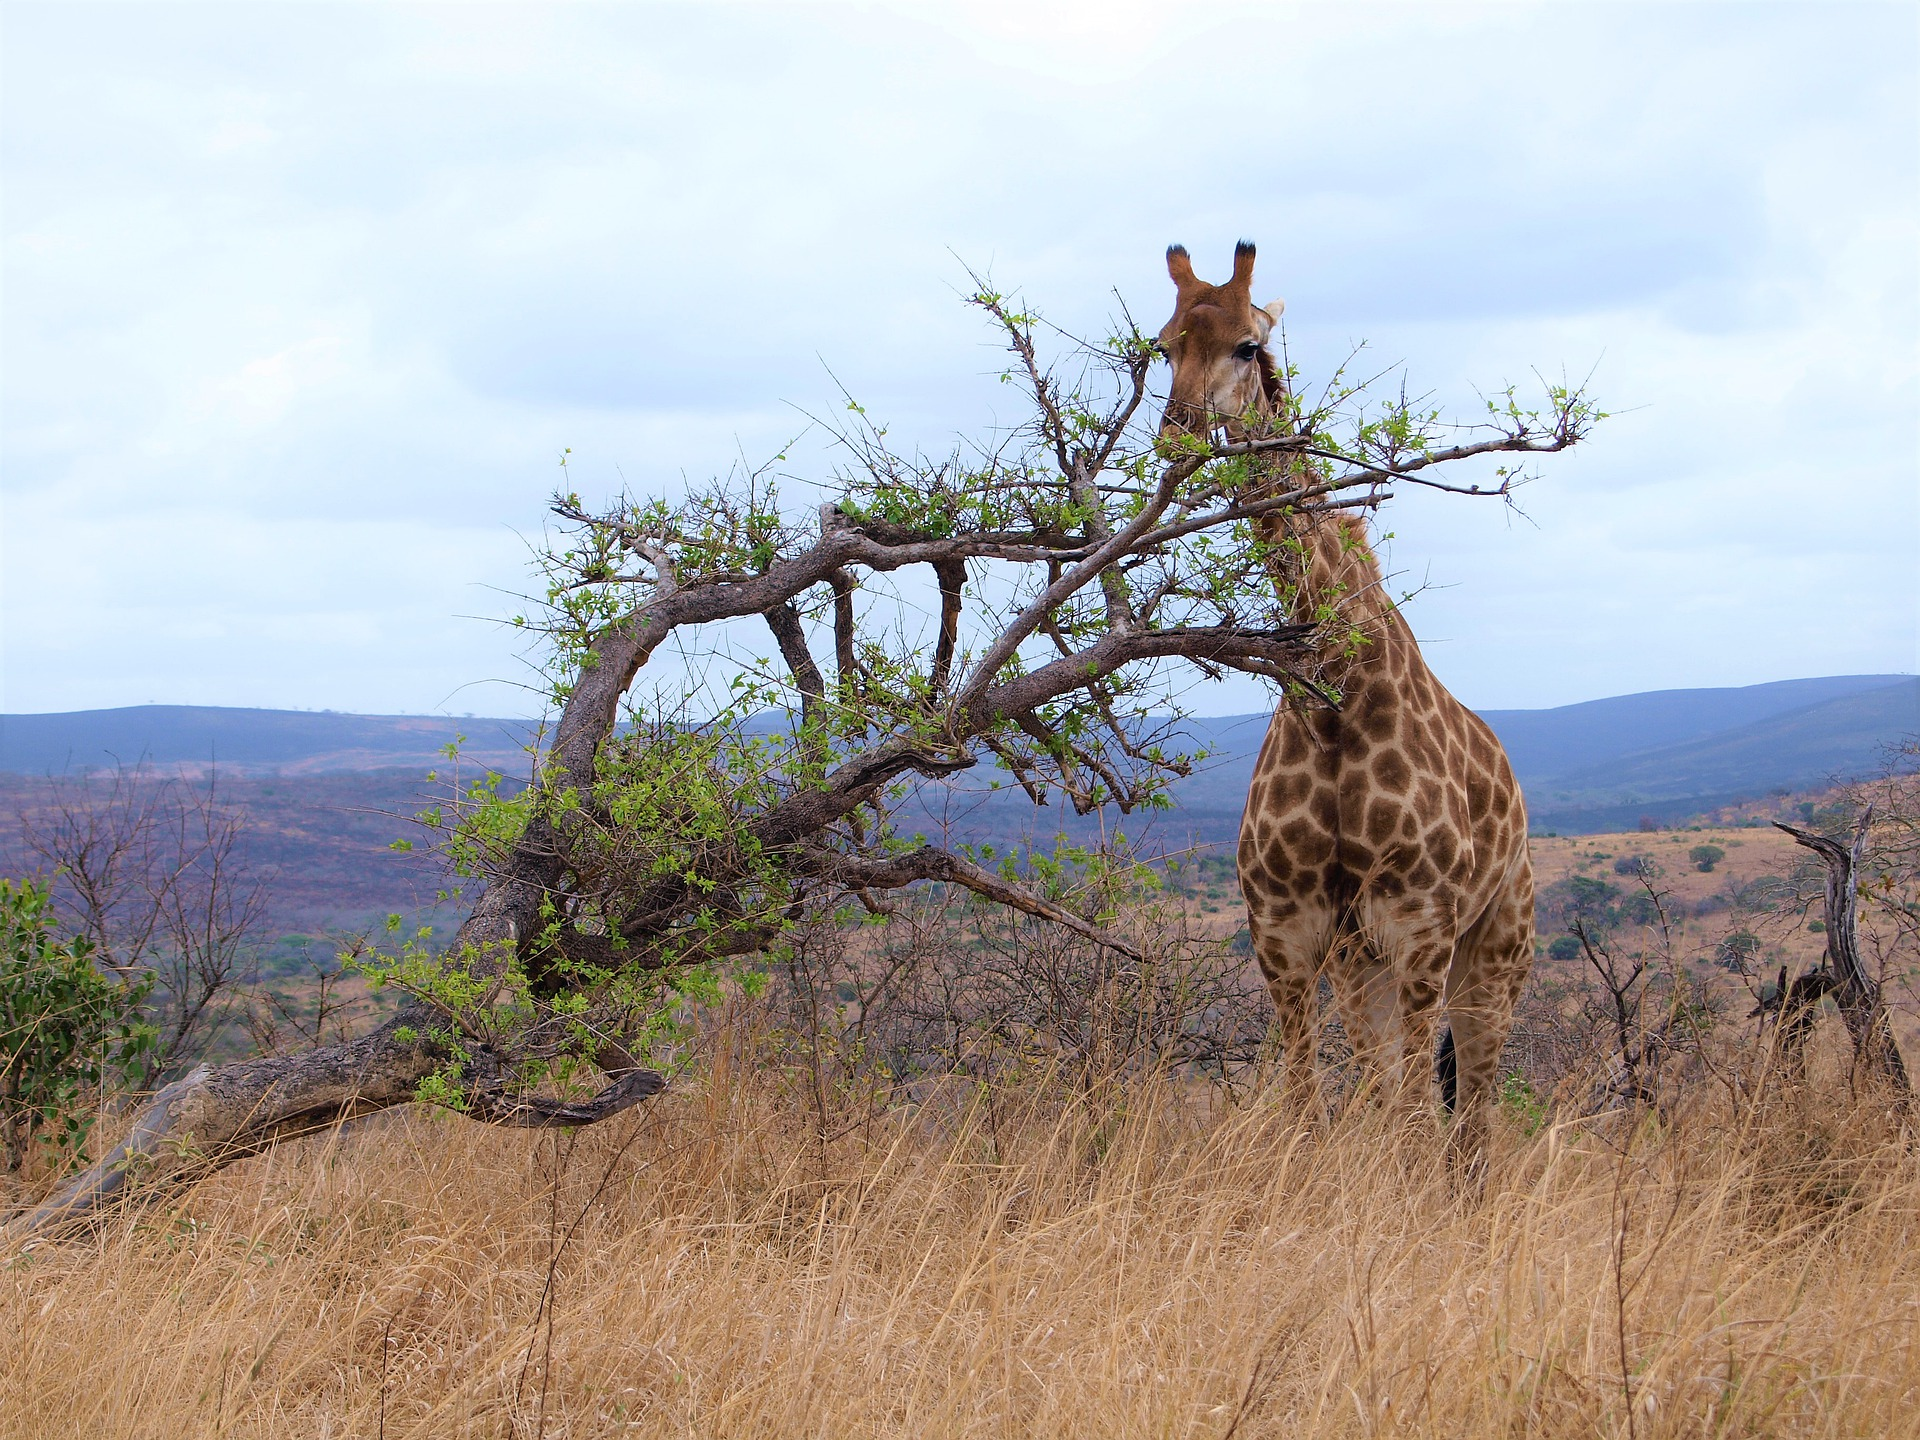 Essence of South Africa | Kruger National Park, South Africa